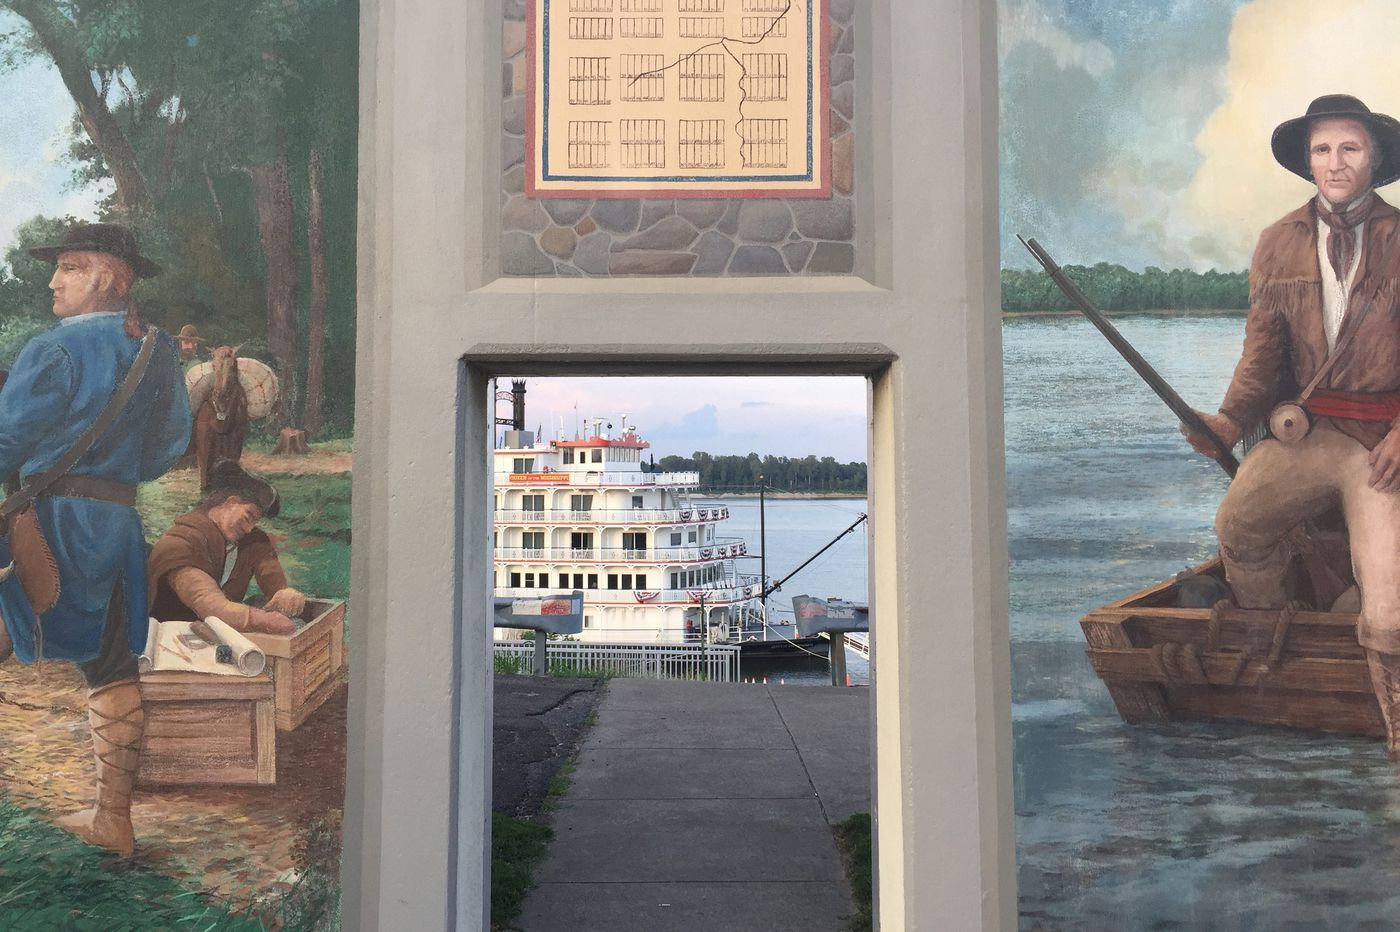 Why visit Kentucky's Paducah? Because artists, preservationists, and foodies think you should